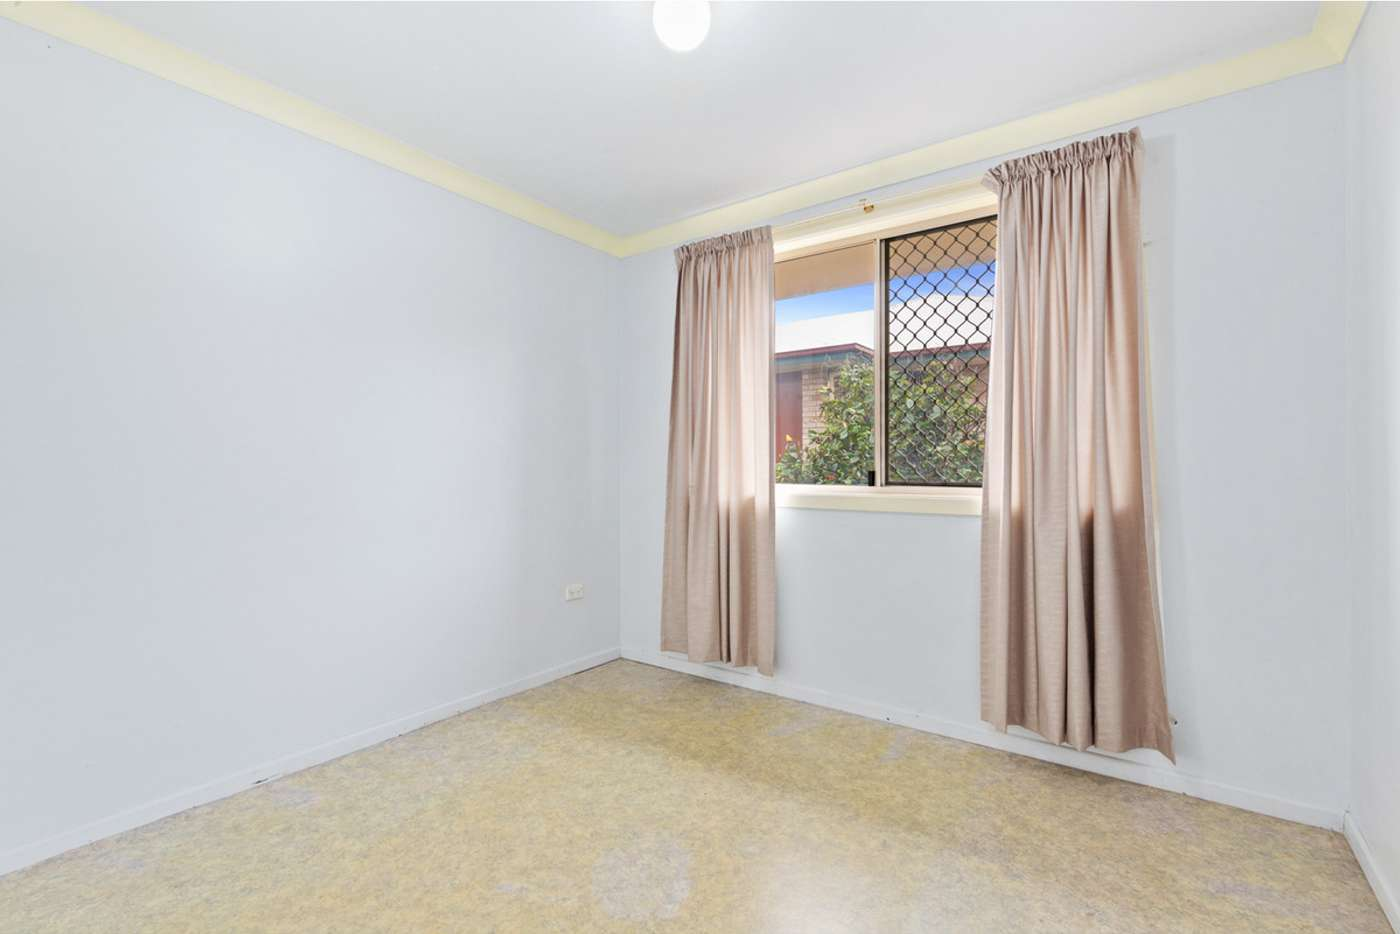 Seventh view of Homely house listing, 404 Farm Street, Norman Gardens QLD 4701